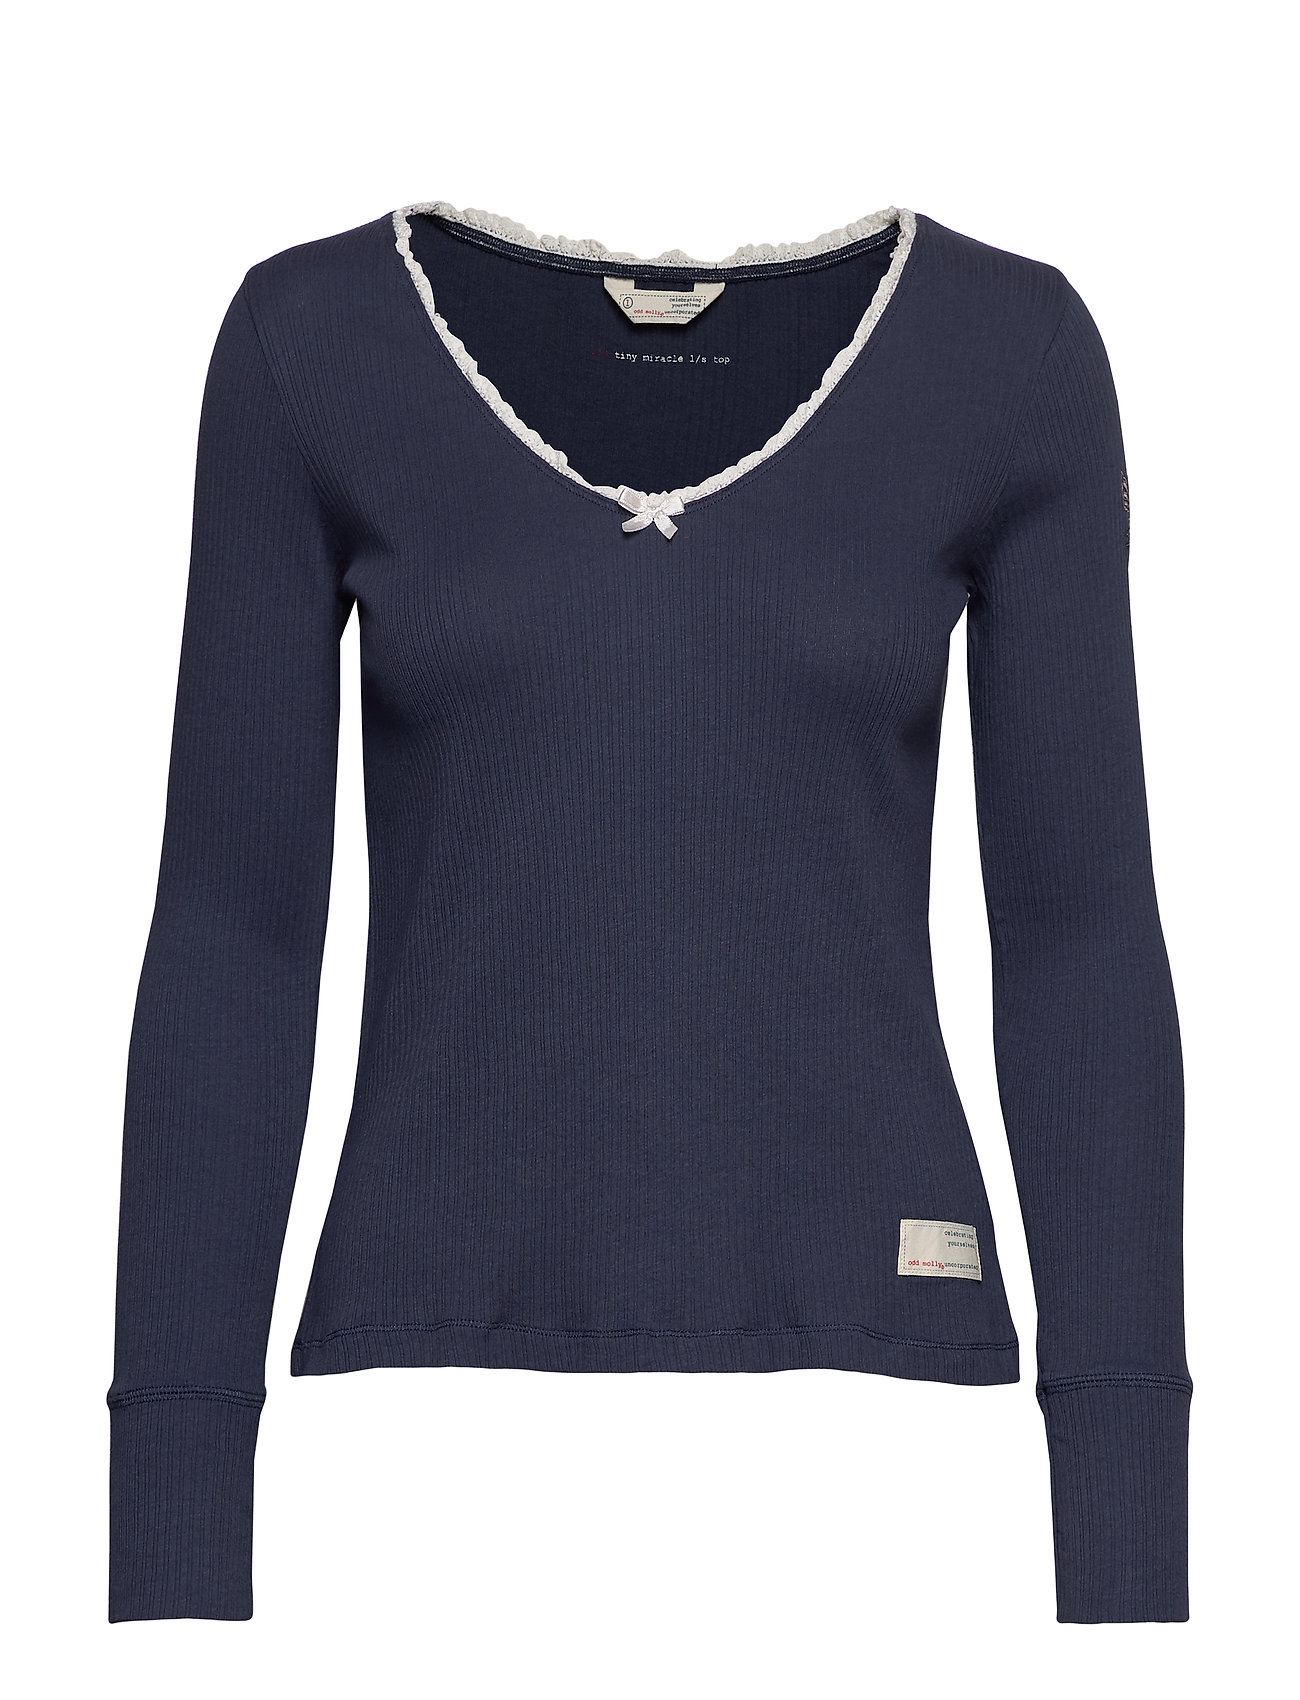 ODD MOLLY Tiny Miracle L/S Top - DARK BLUE